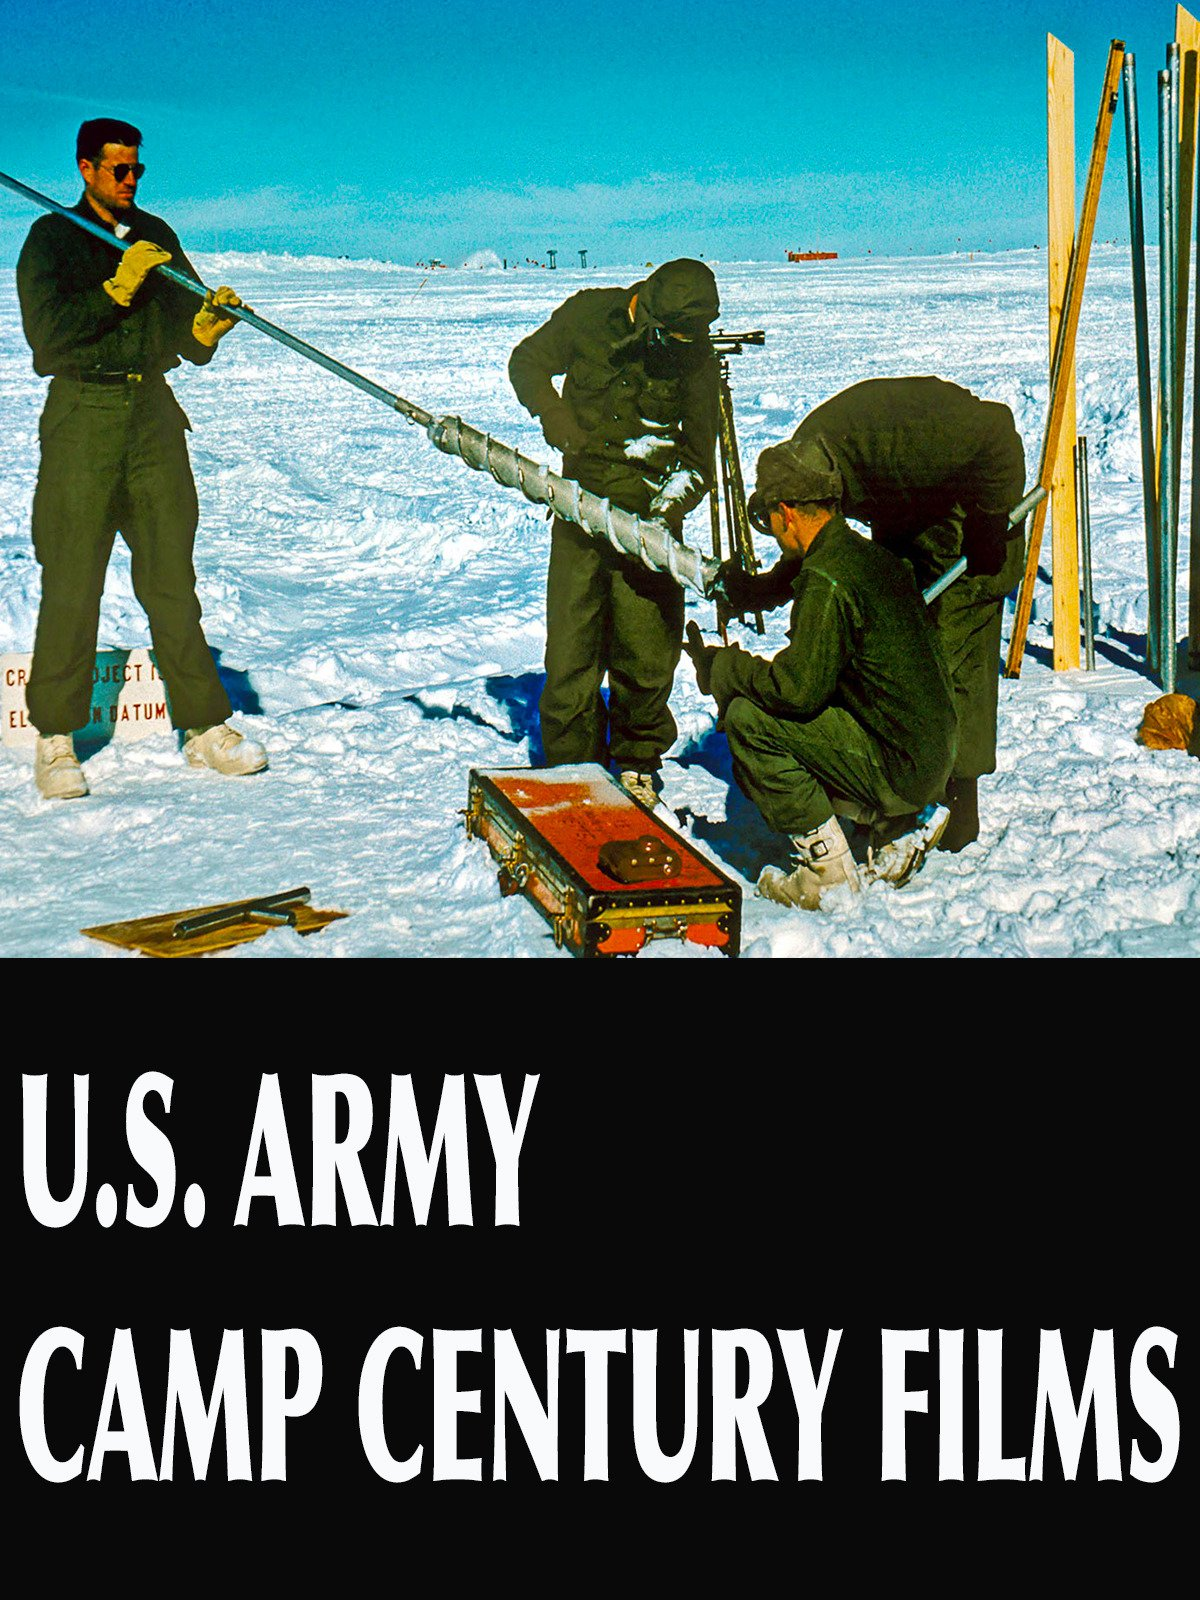 U.S. Army Camp Century Films